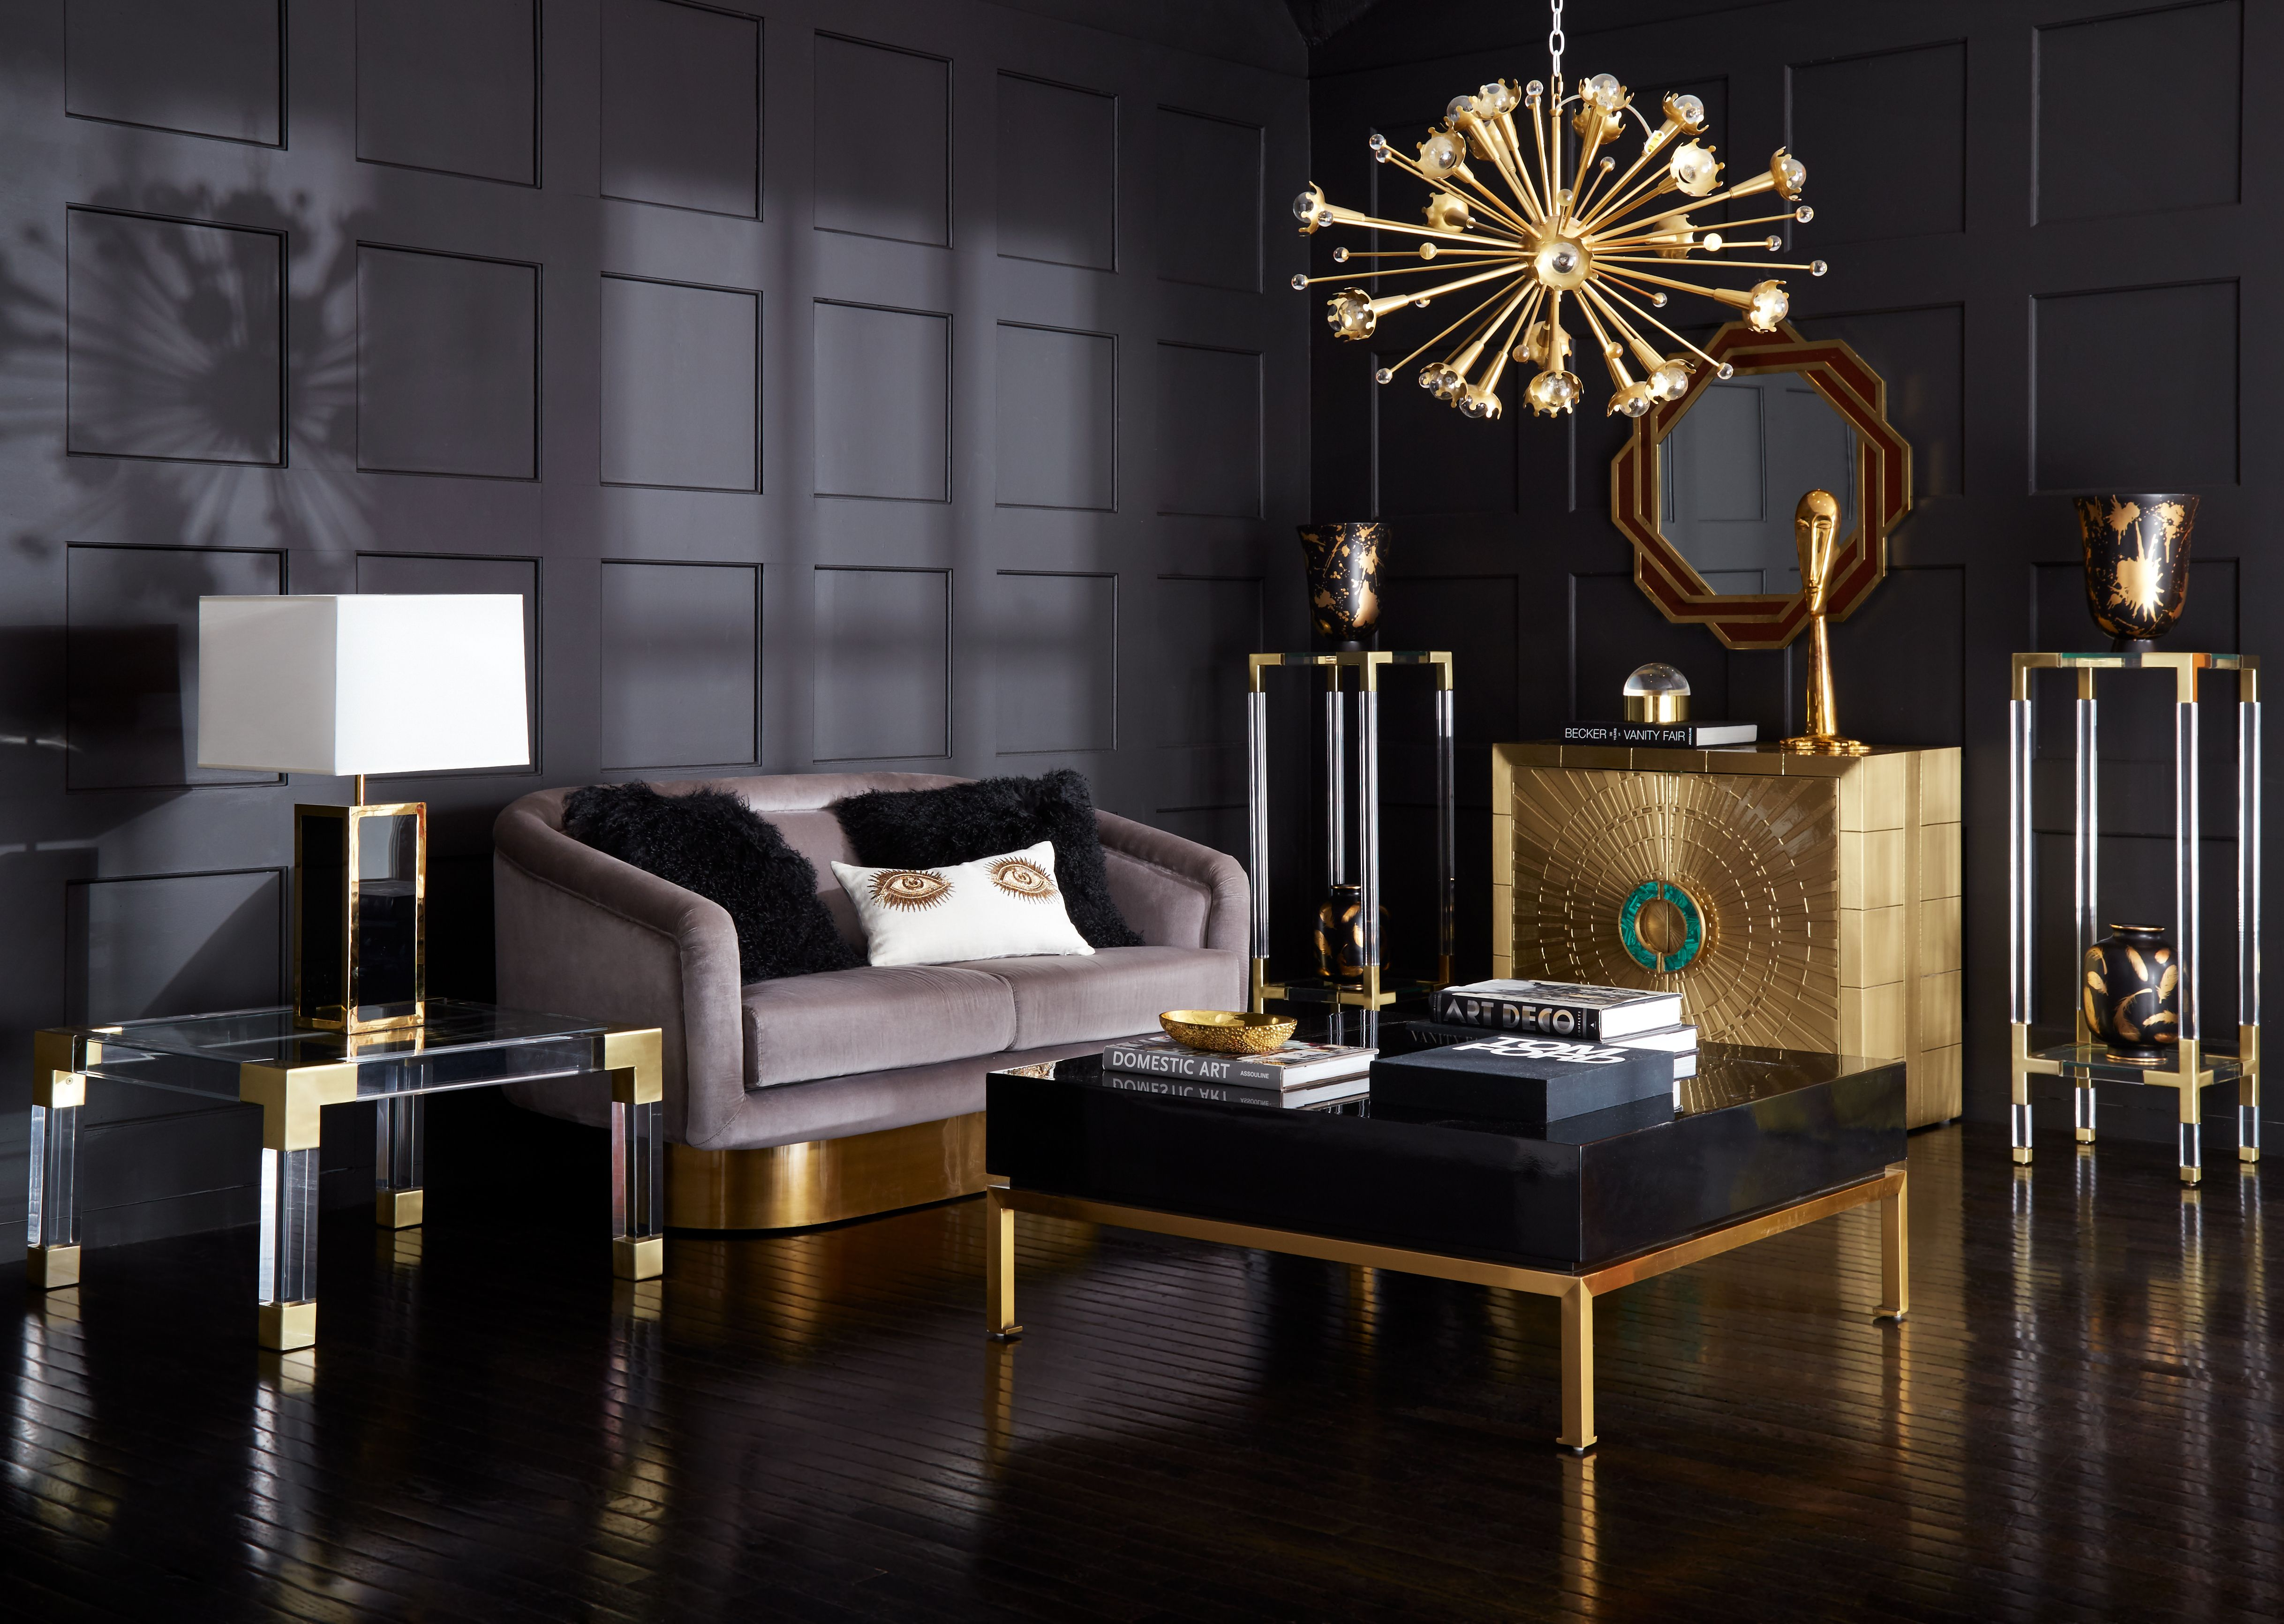 Bring modern american glamour home our annual furniture sale starts